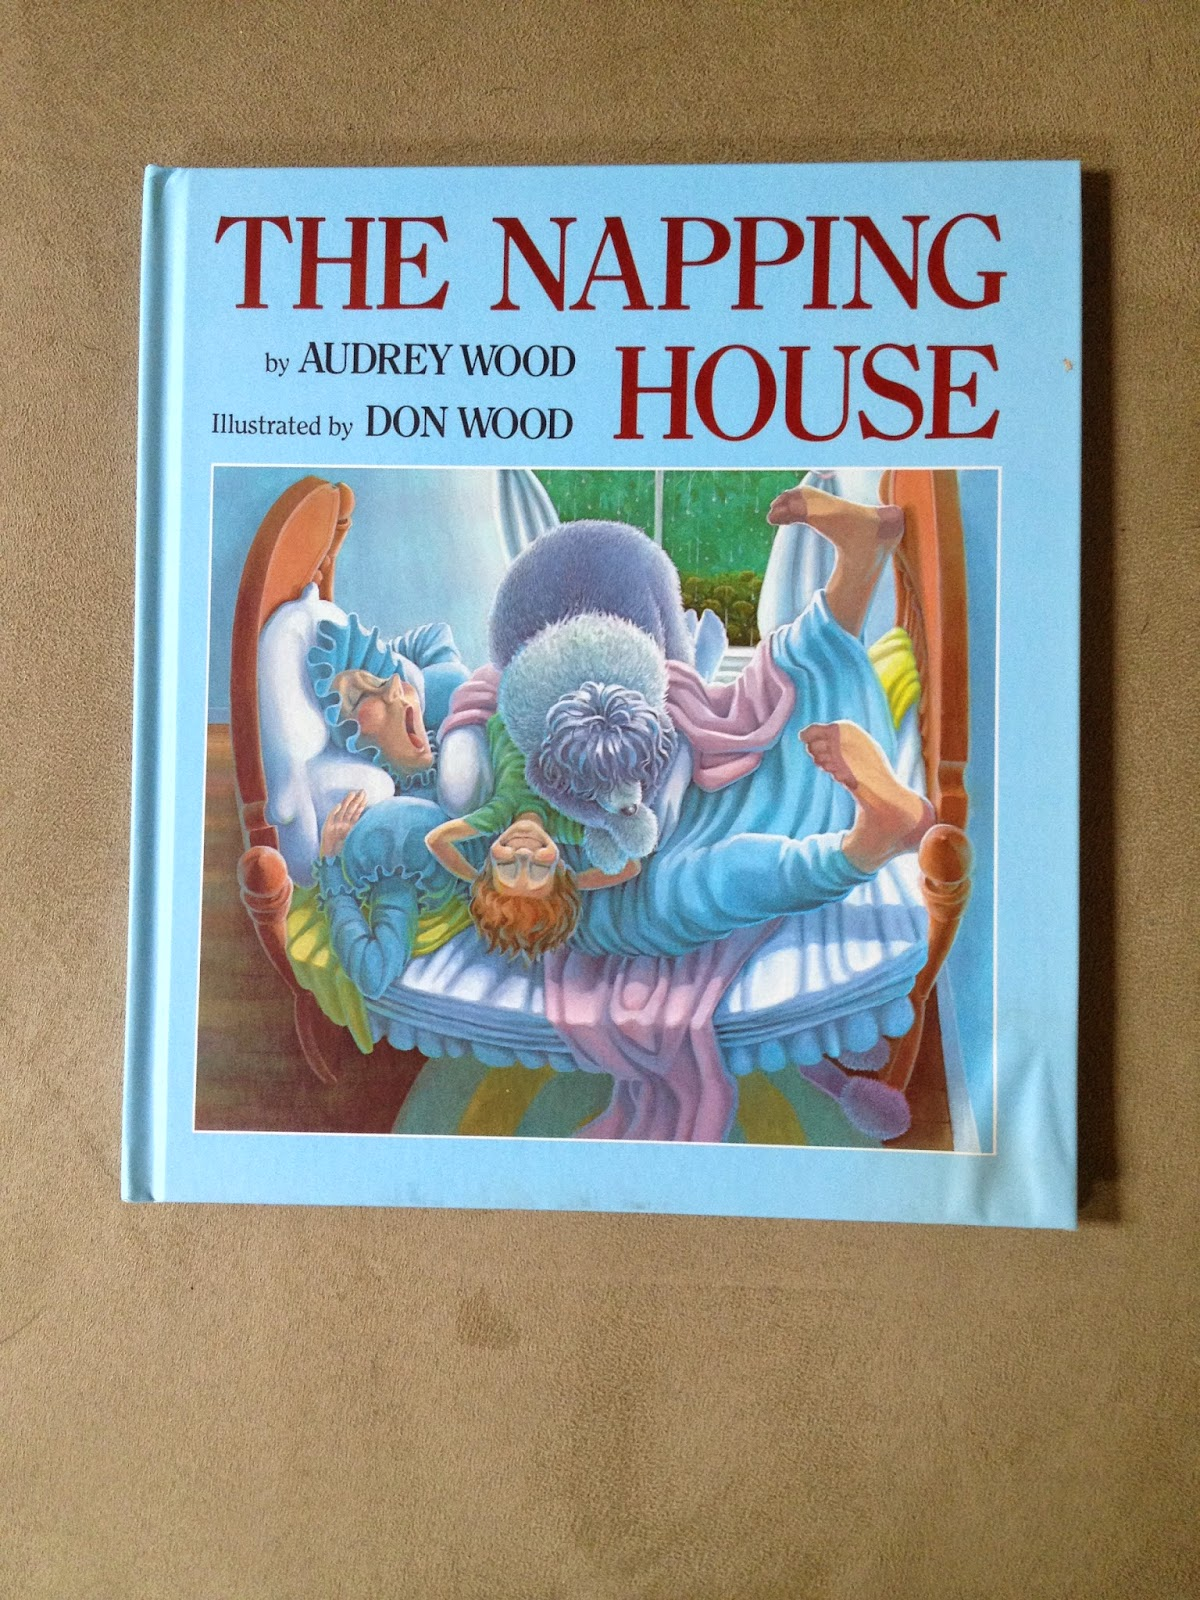 Storytime Snack And Craft The Napping House